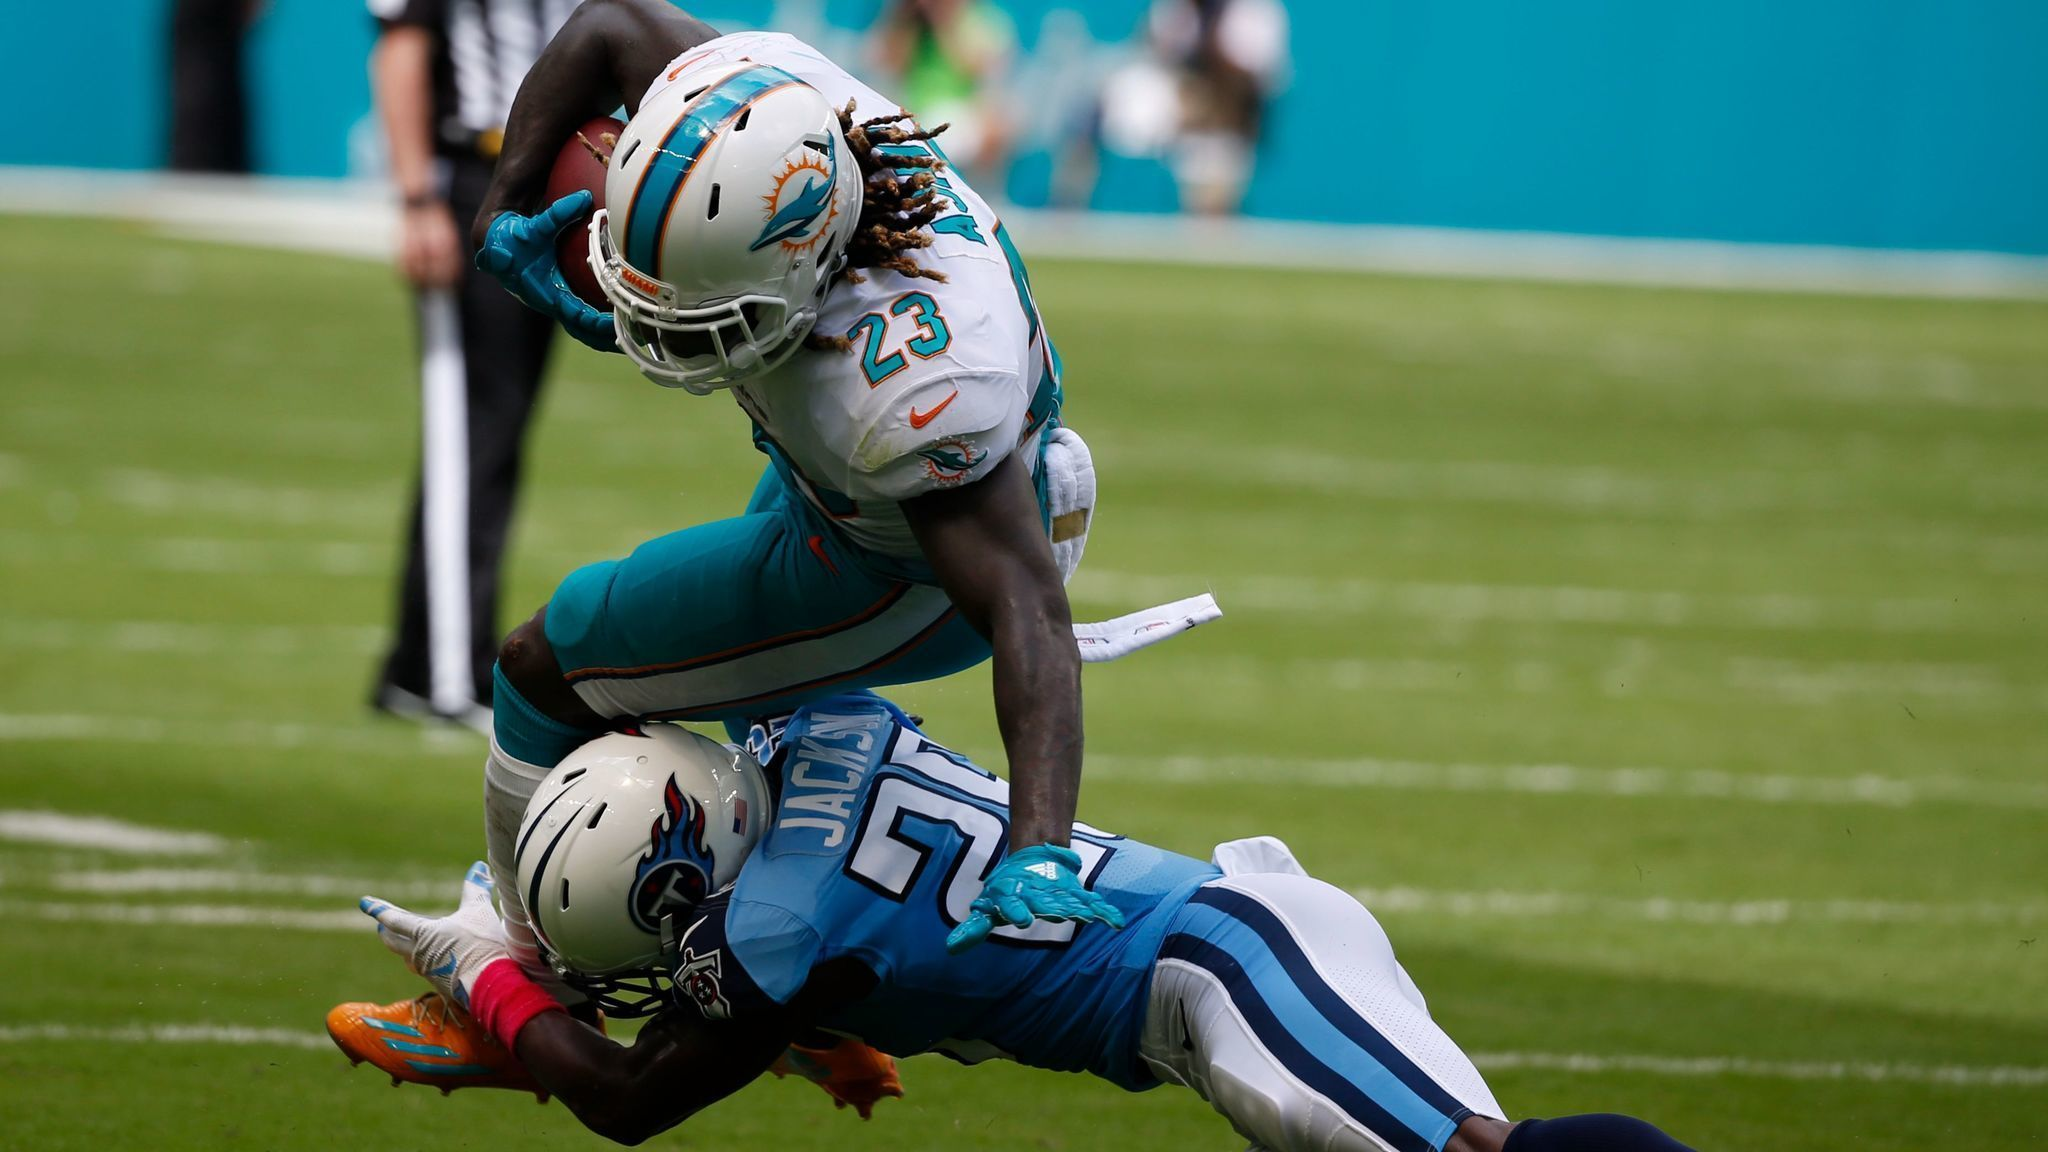 Hyde: Ten thoughts on Dolphins\' 16-10 win over Titans - Sun Sentinel